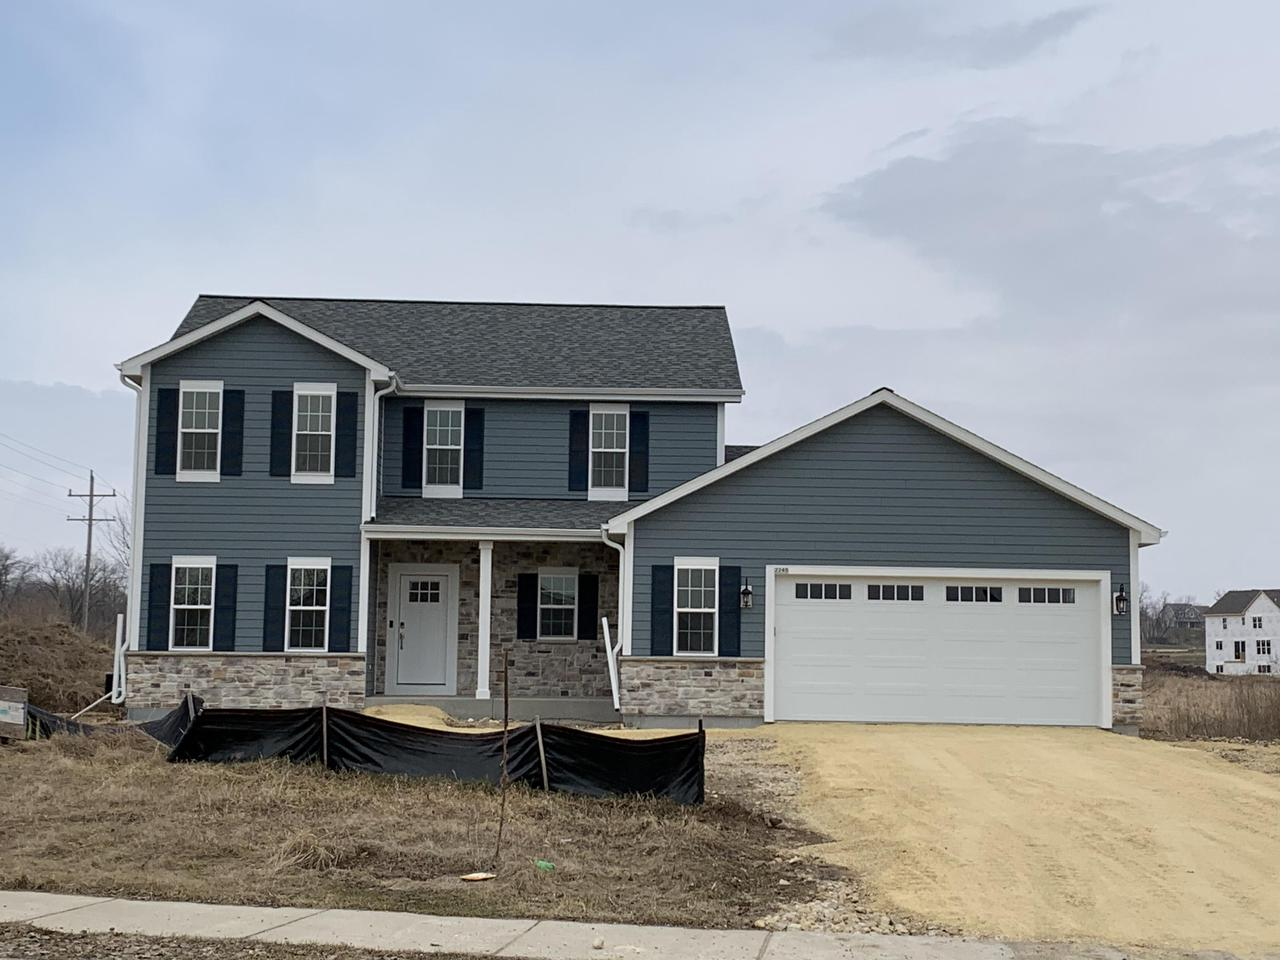 NEW CONSTRUCTION by Stepping Stone homes in the SLINGER SCHOOL DISTRICT! The Camden offers lots of space in an anything but traditional two story home. Spacious MBR w/private MBA & HUGE walk in closet. Open concept kitchen/living room w/fireplace and patio door off dining area. 2x6 exterior framing and upgrades like soft close dovetail cabinetry, quartz/marble counter tops, double sinks in the bathrooms, upgraded flooring, 8 ft GA doors & more! Full sized windows in LL! This home comes equipped with Smart Home Technology, including integrated lighting, door locks, ecobee smart thermostat, video doorbell, Lift Master garage door, all of which you can control from your mobile device.  Smart home technology at it's best.  Large 0.89 acre lot a short distance from 41/45 making commuting simple